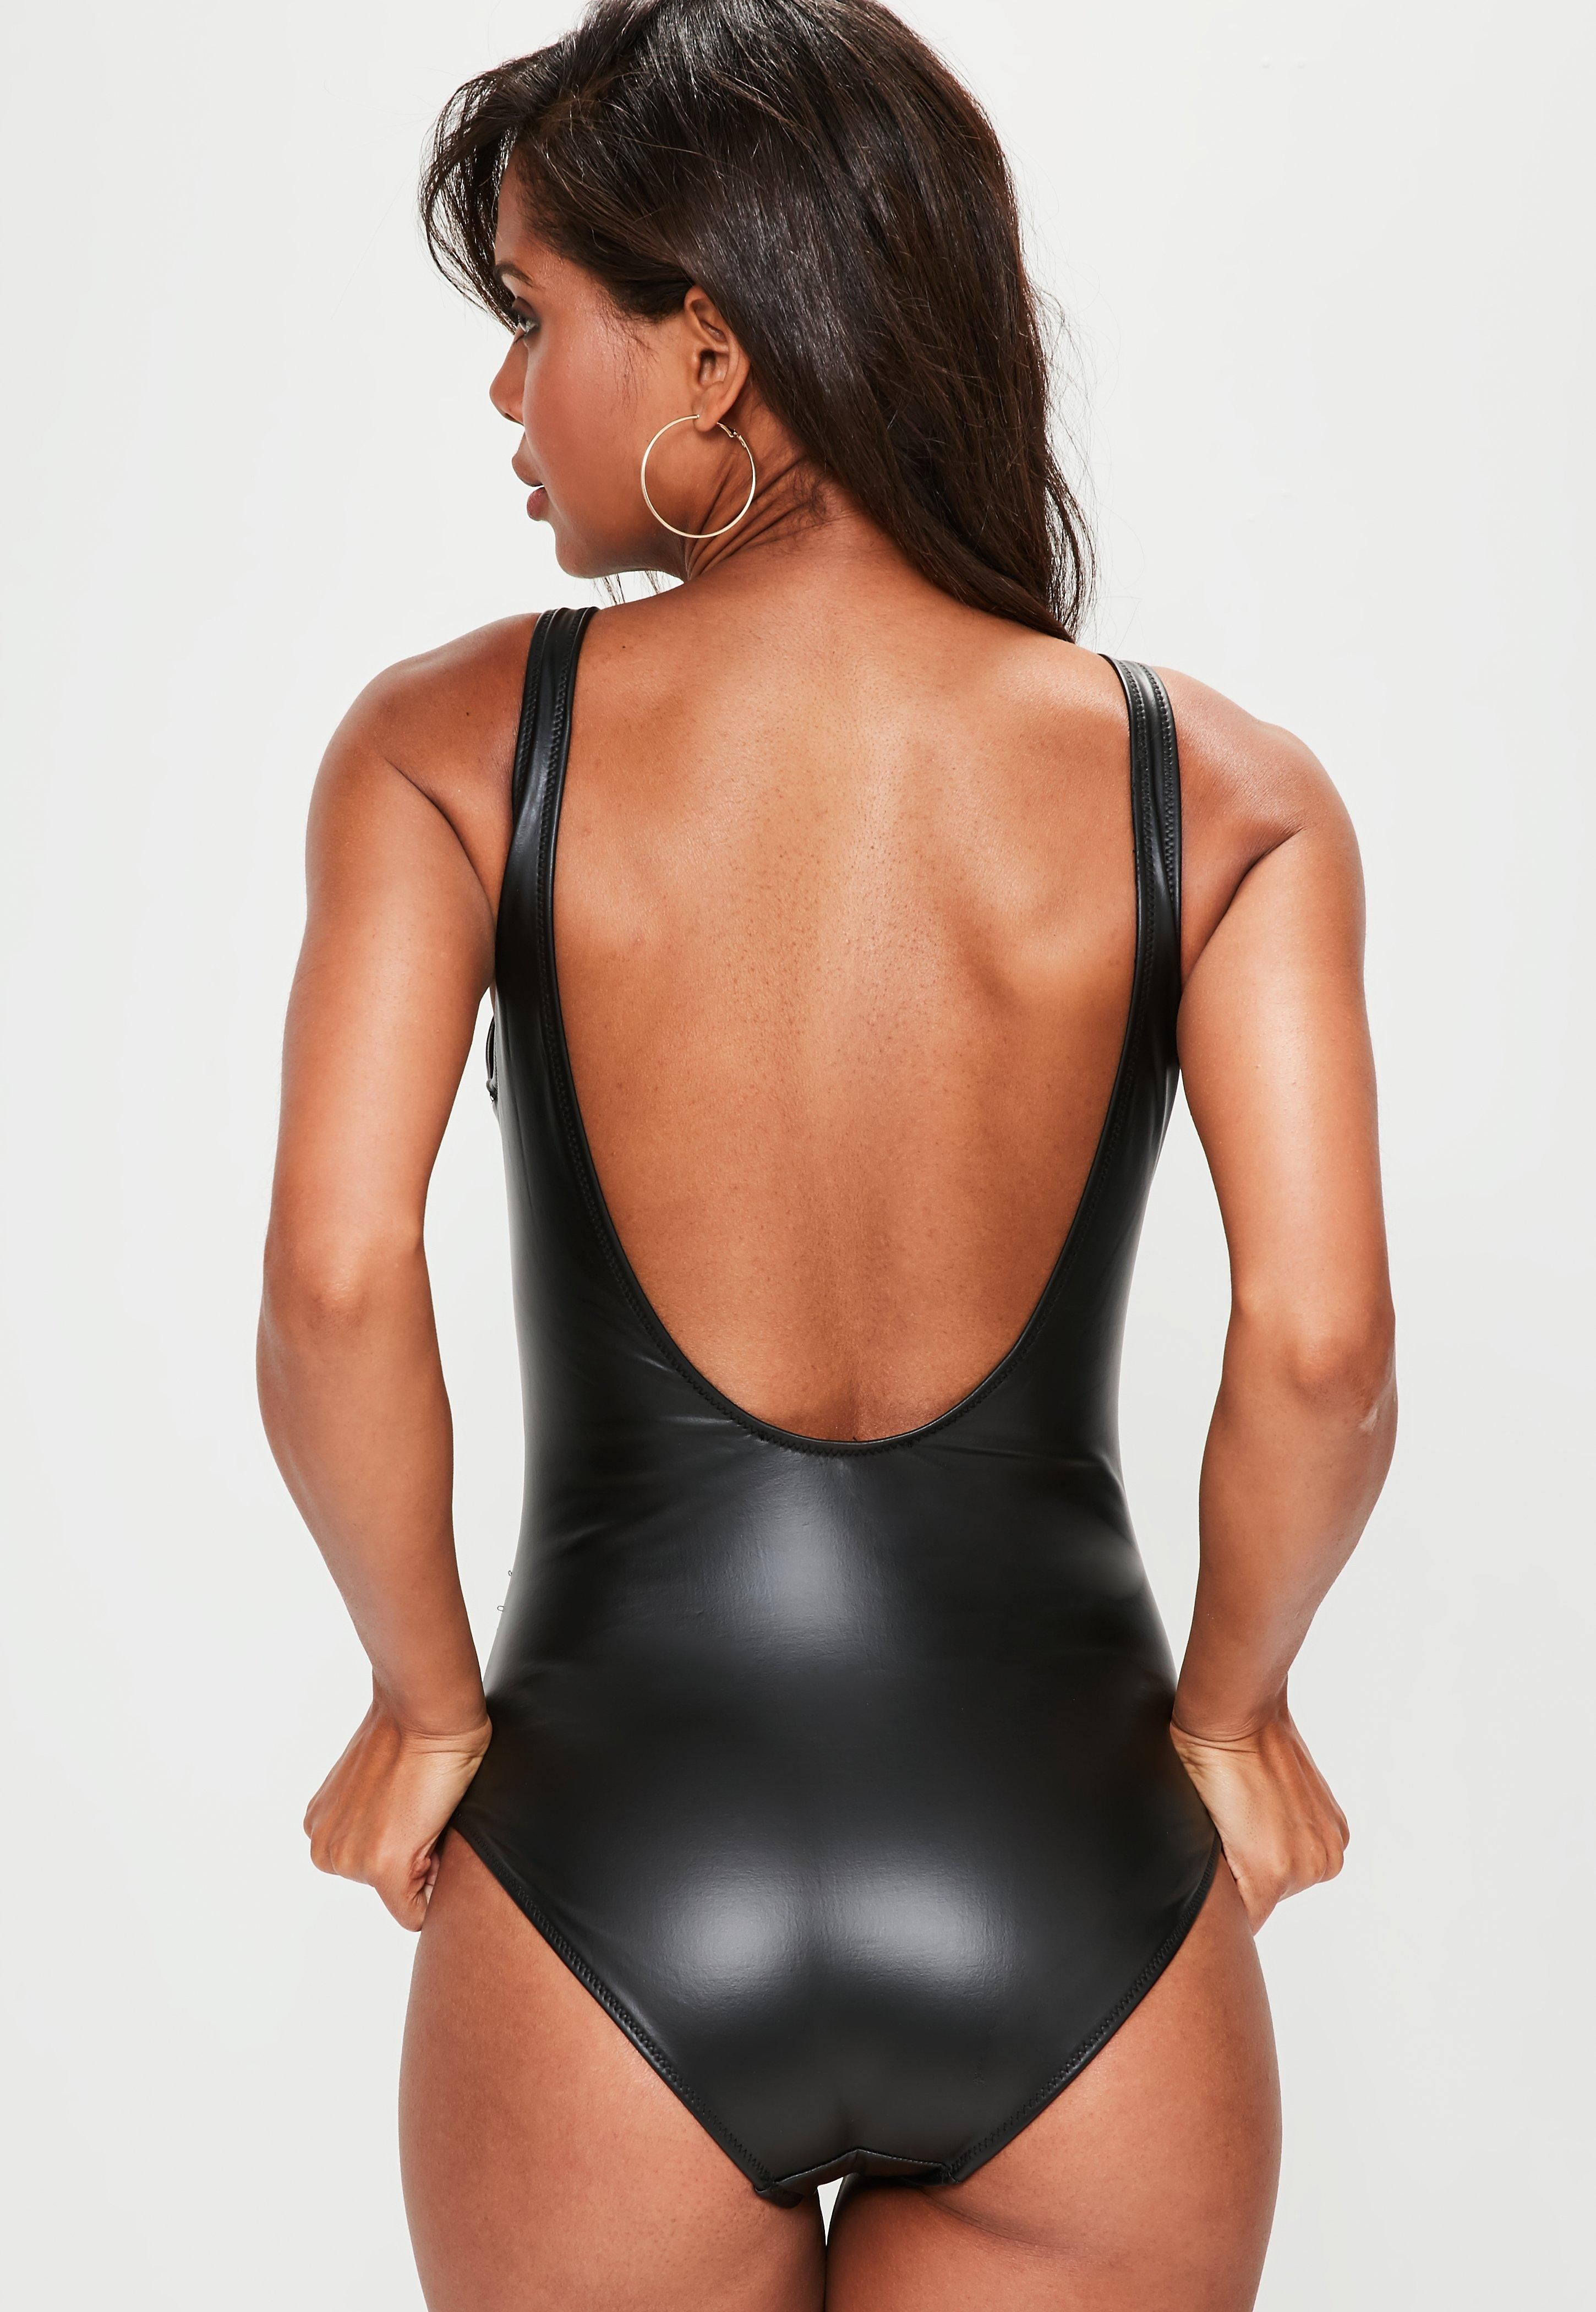 e0cf500fd Zip it like it s hot with this black wet look swimsuit with a front zip and  flattering fit.